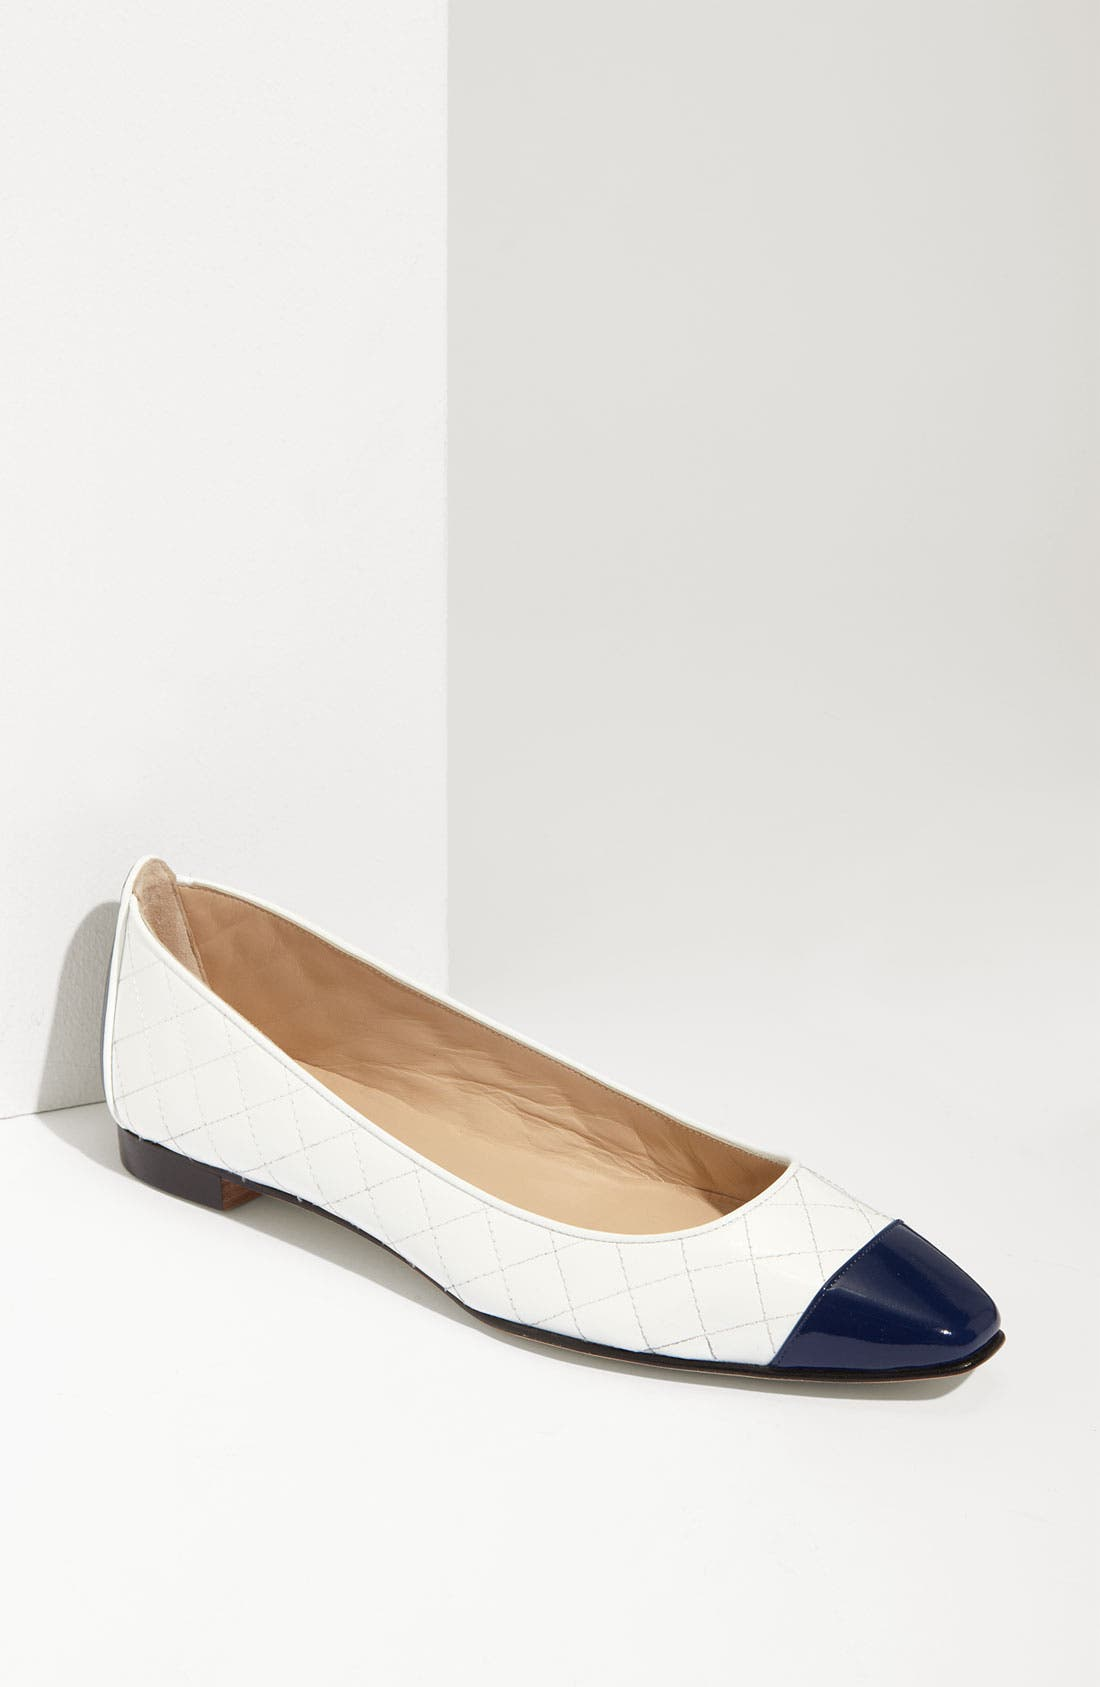 Alternate Image 1 Selected - Manolo Blahnik Pointed Cap Toe Flat